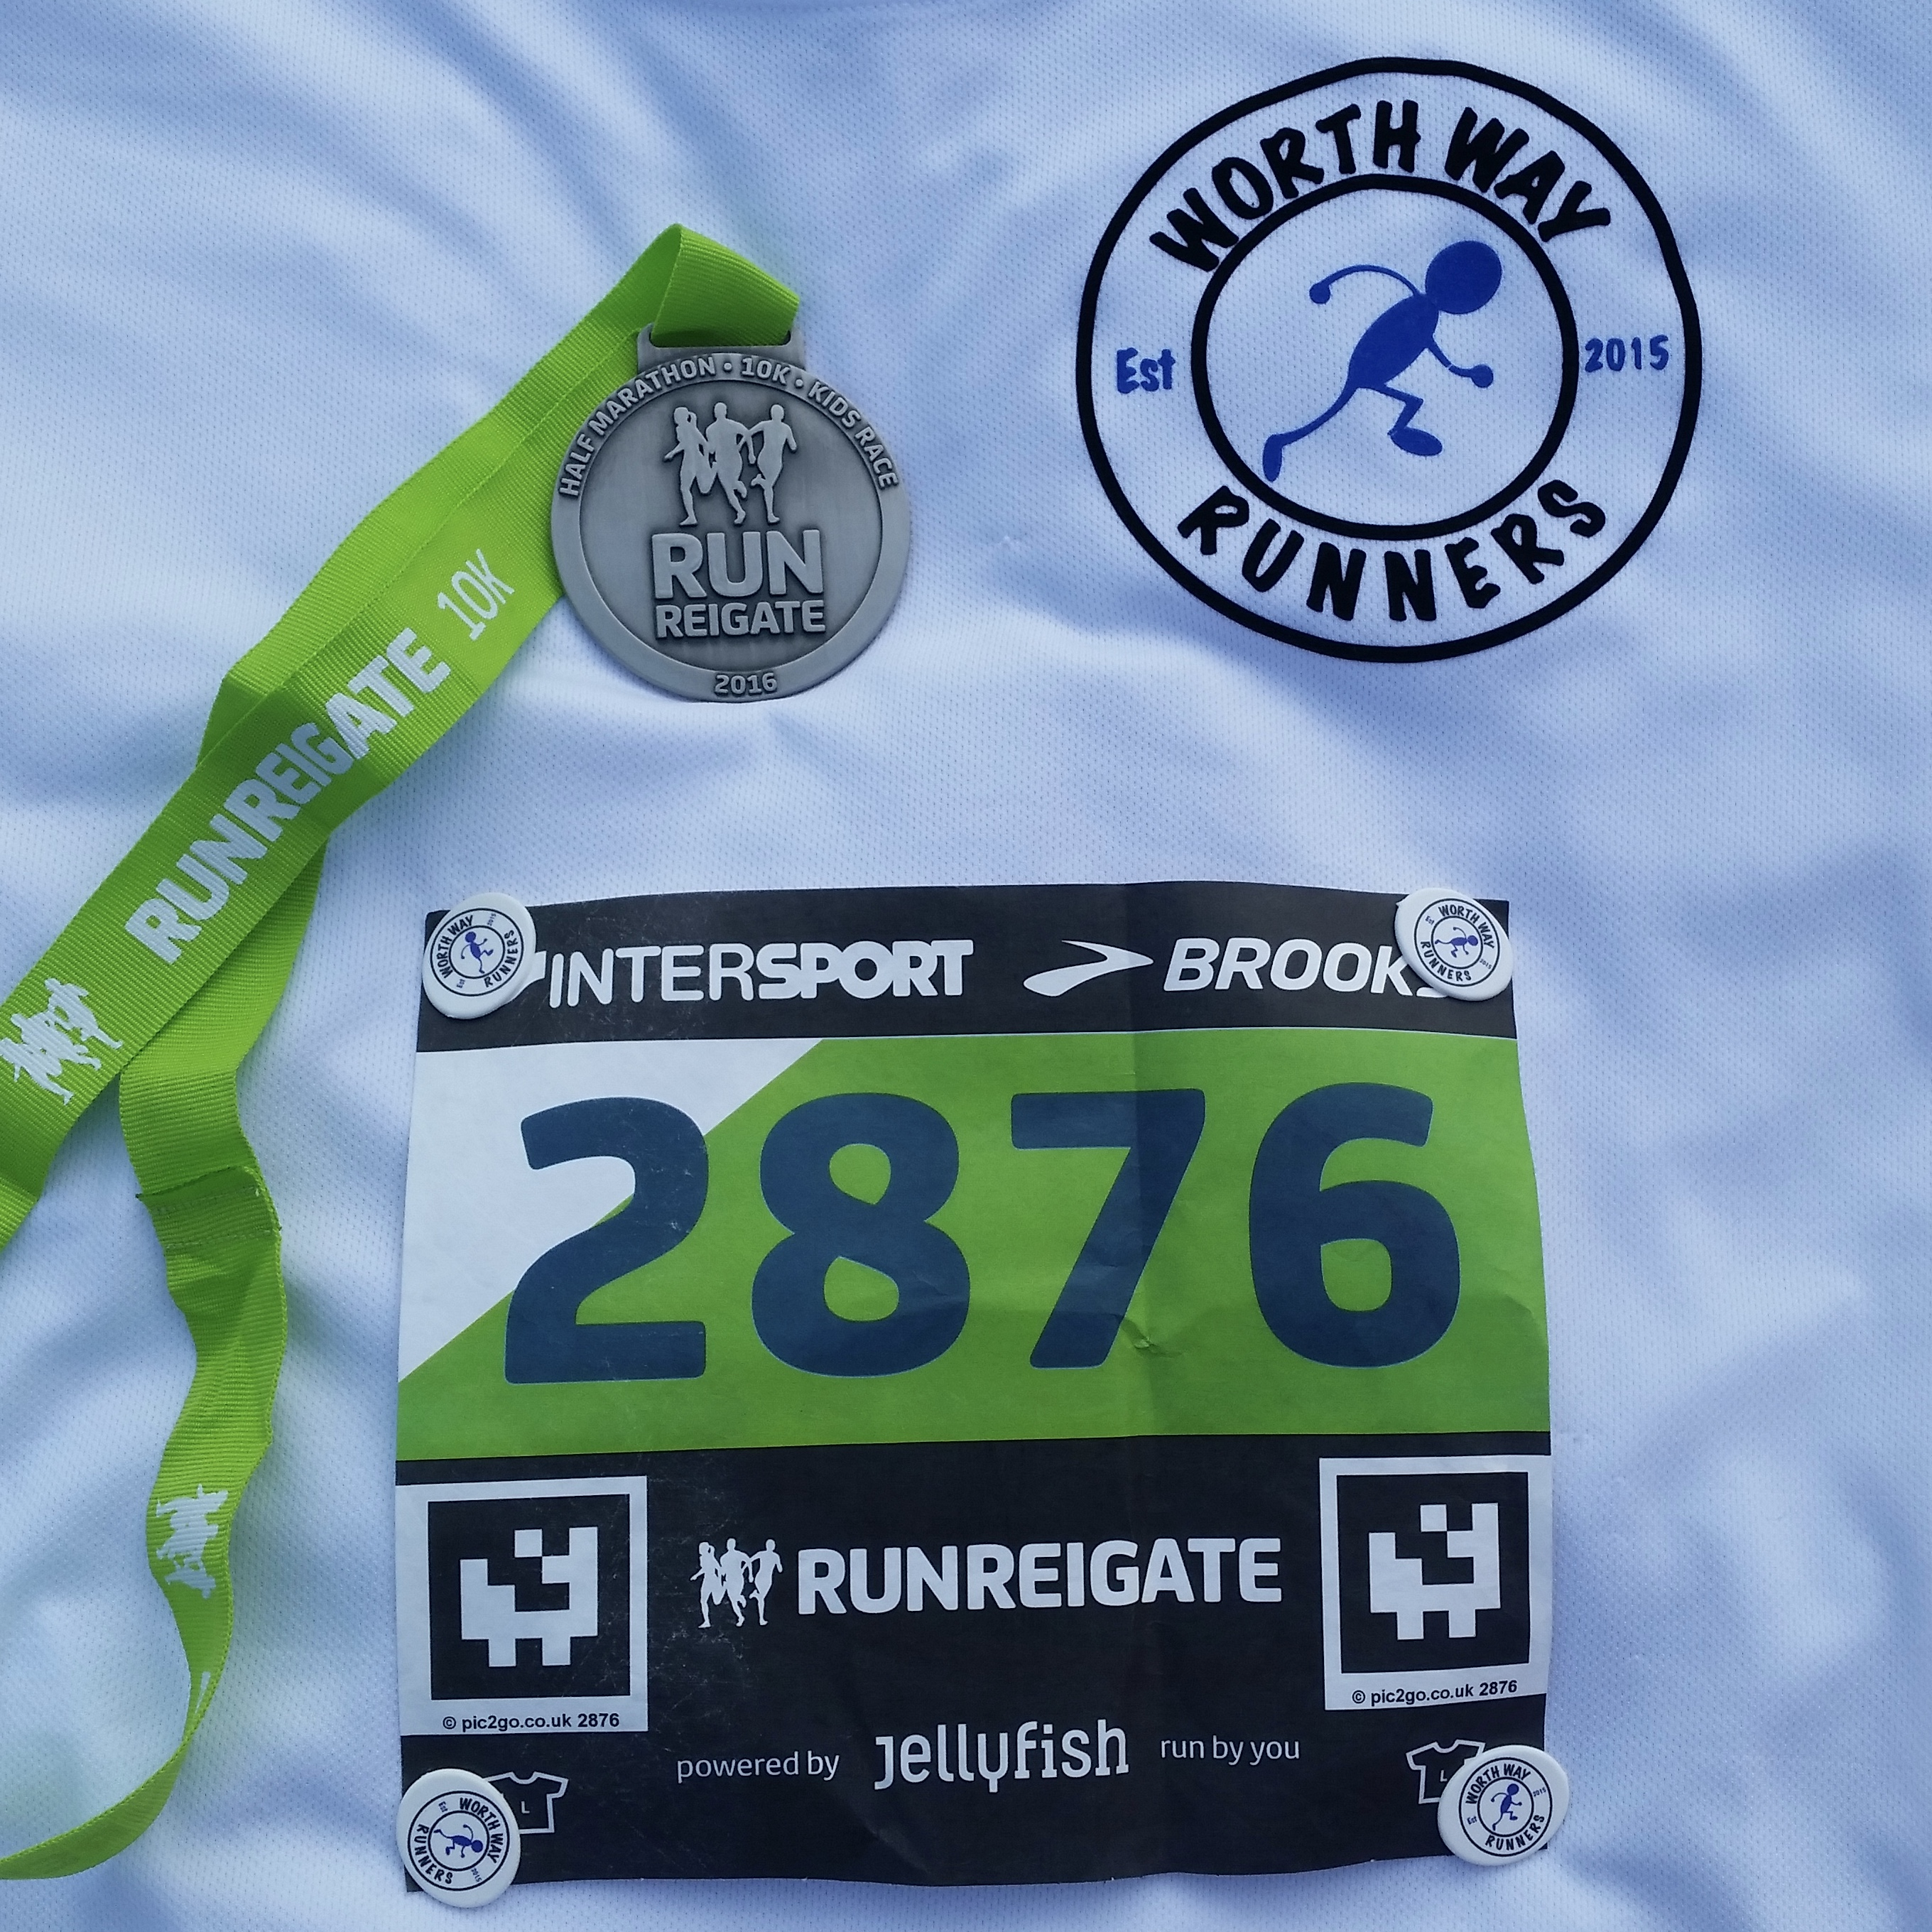 Worth Way Runners - Logo Event Clips